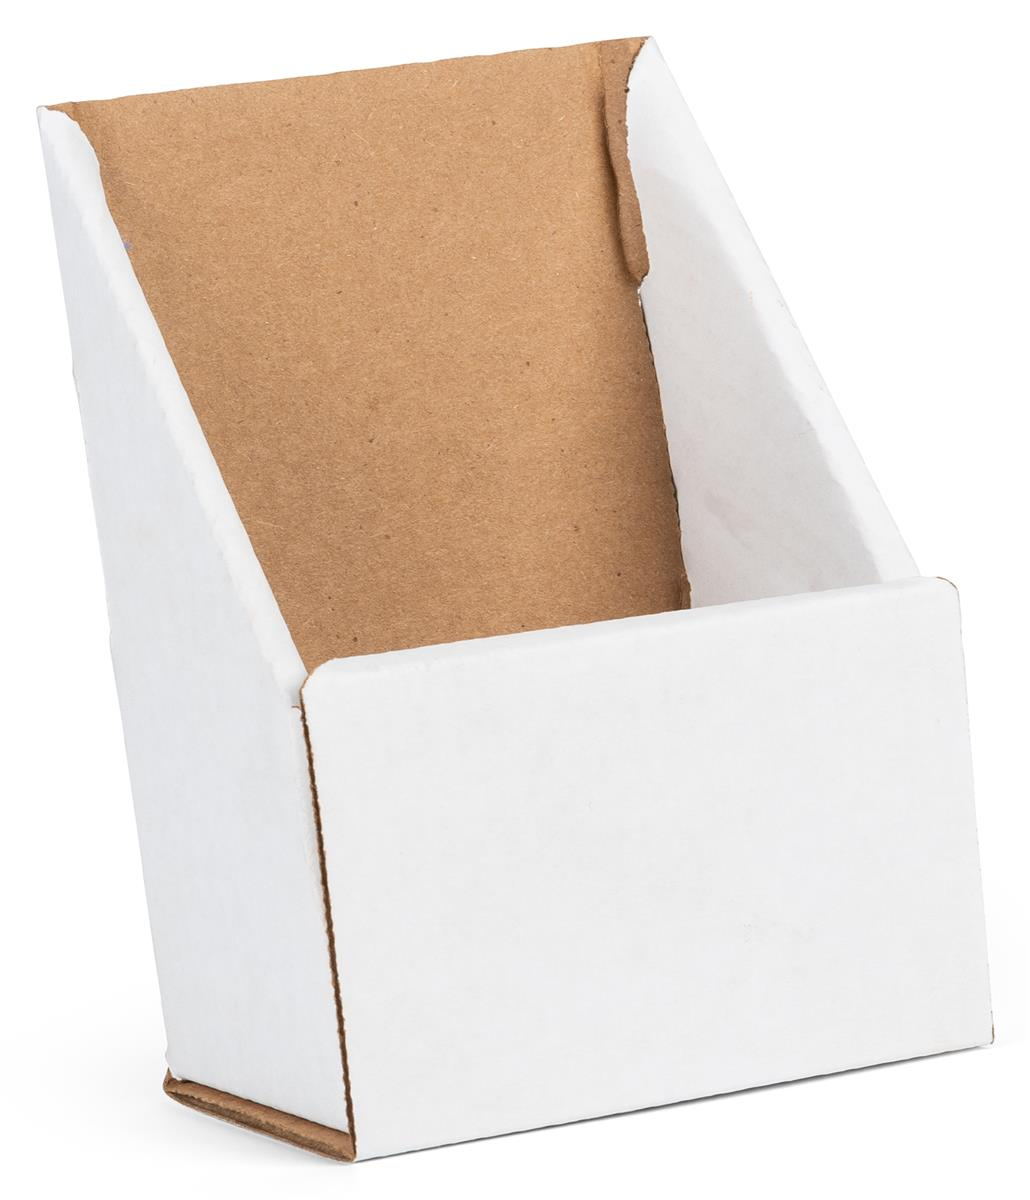 White Cardboard Brochure Holder   Folds   Ships Flat